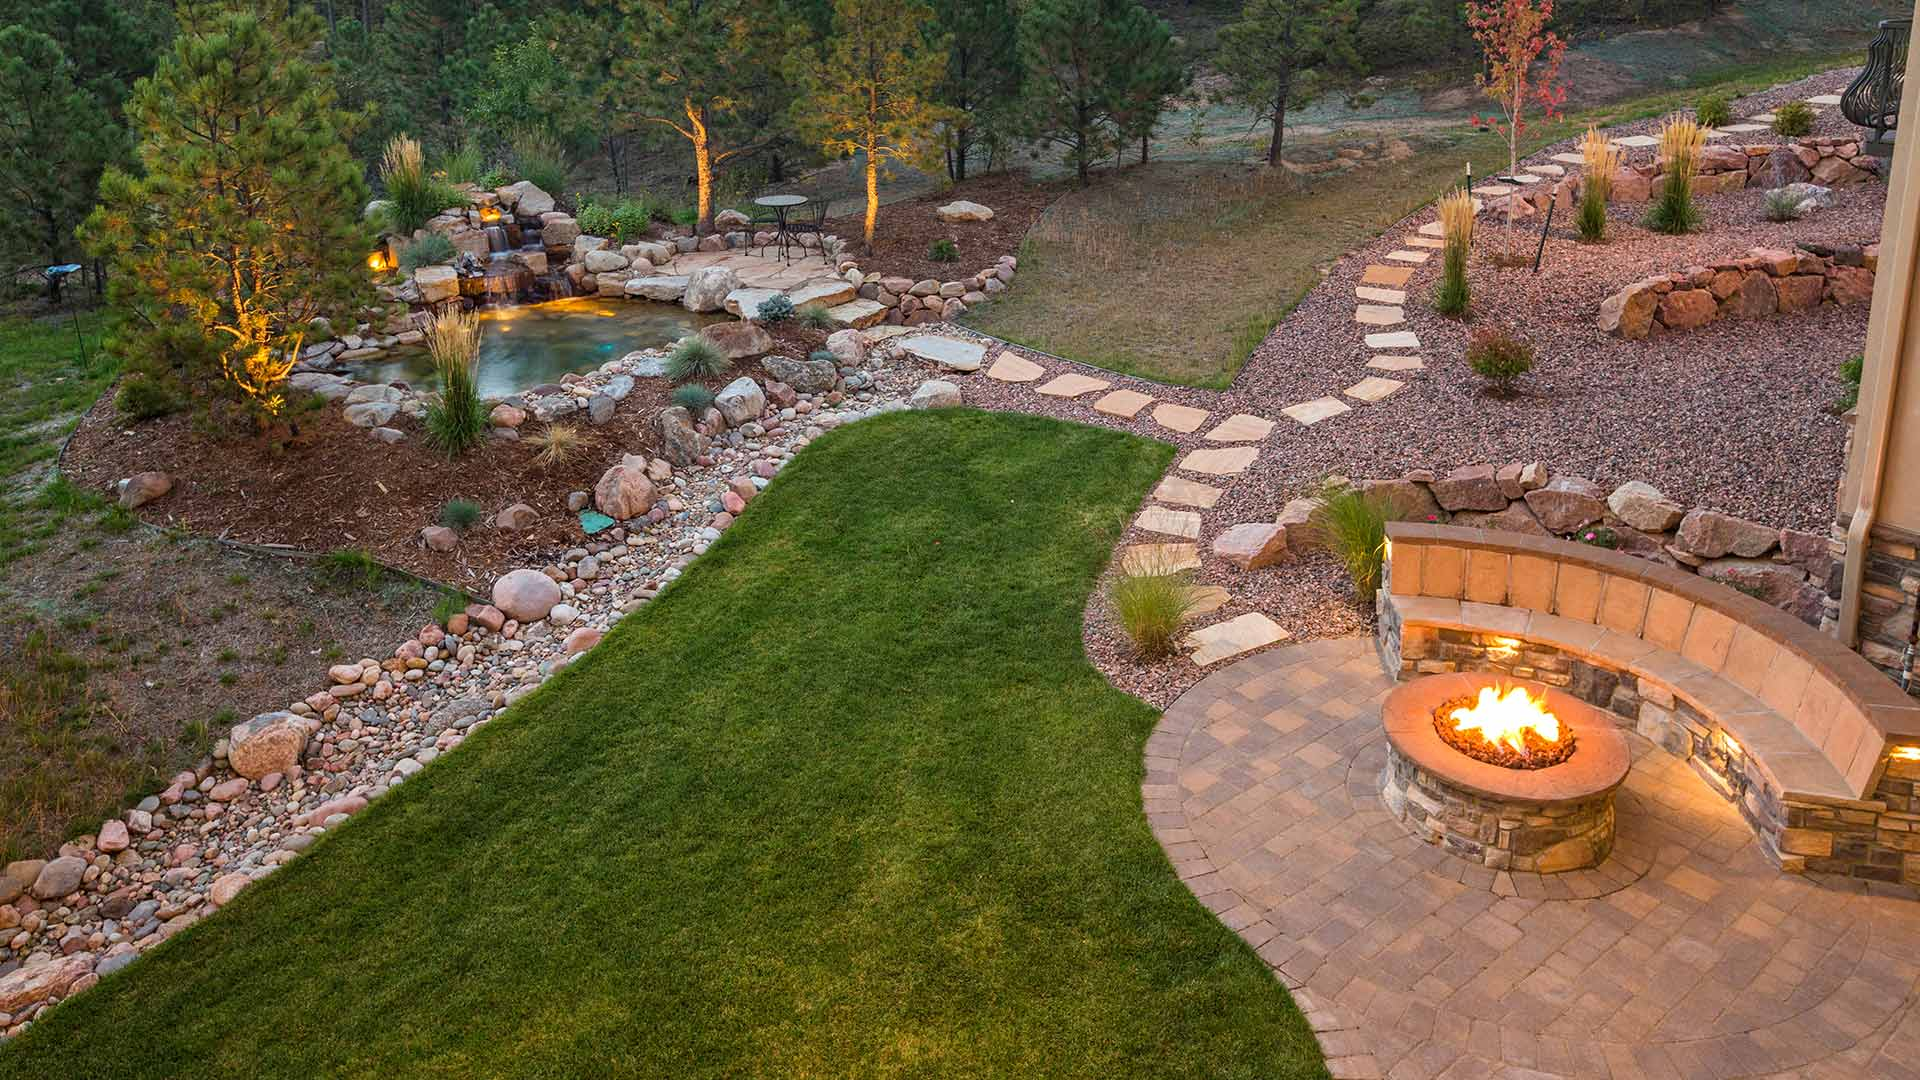 This fire pit in Millstadt, IL will provide enjoyment for the homeowners.